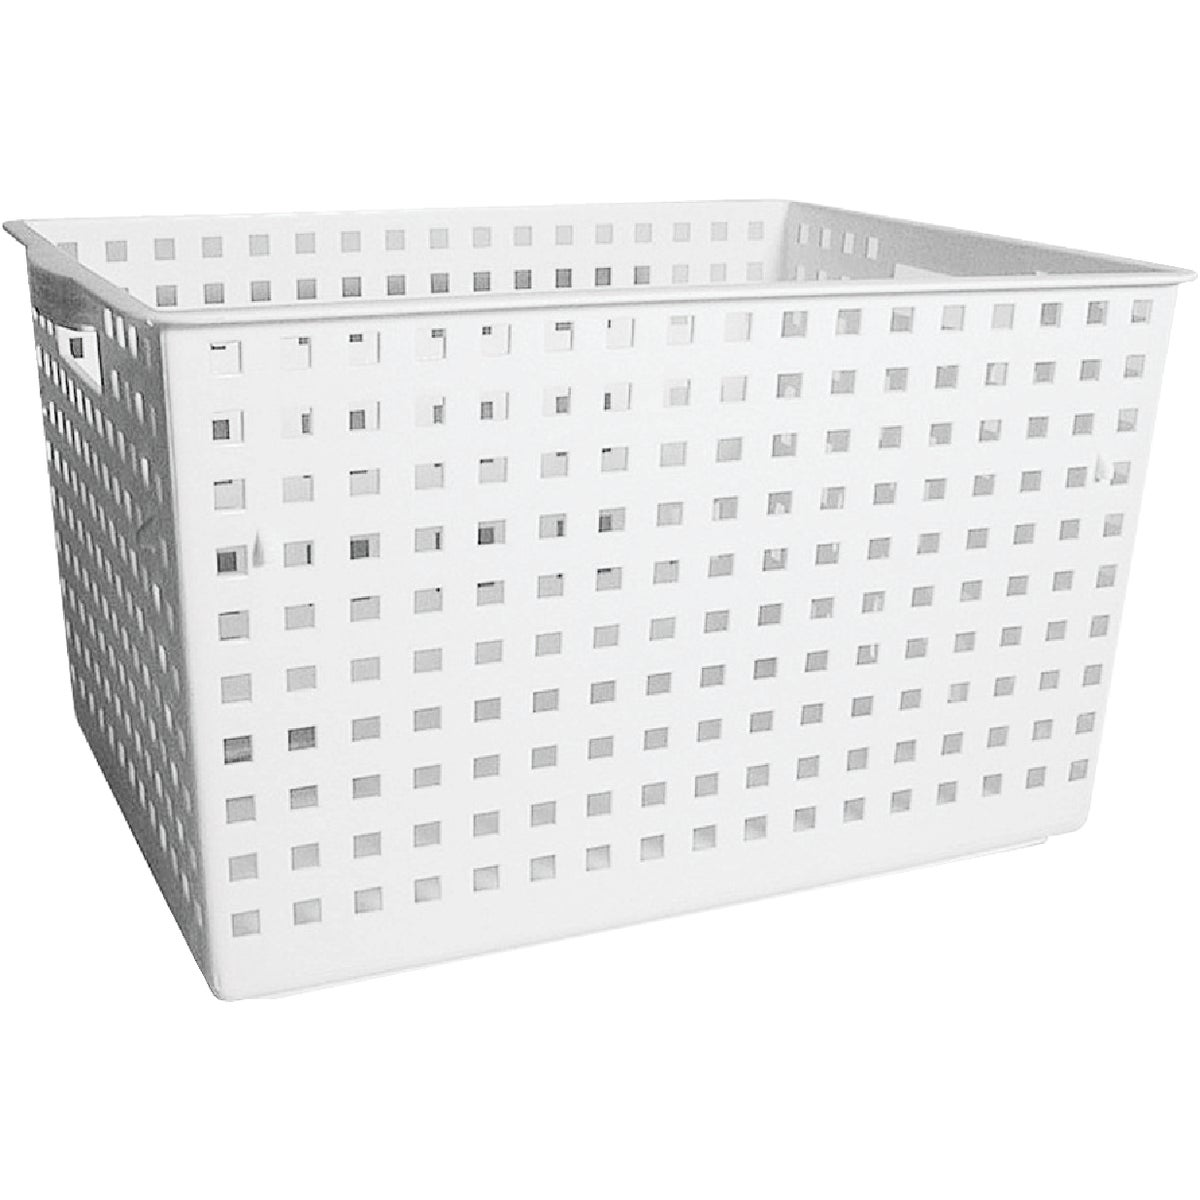 PLASTIC BASKET - 47001 by Interdesign Inc